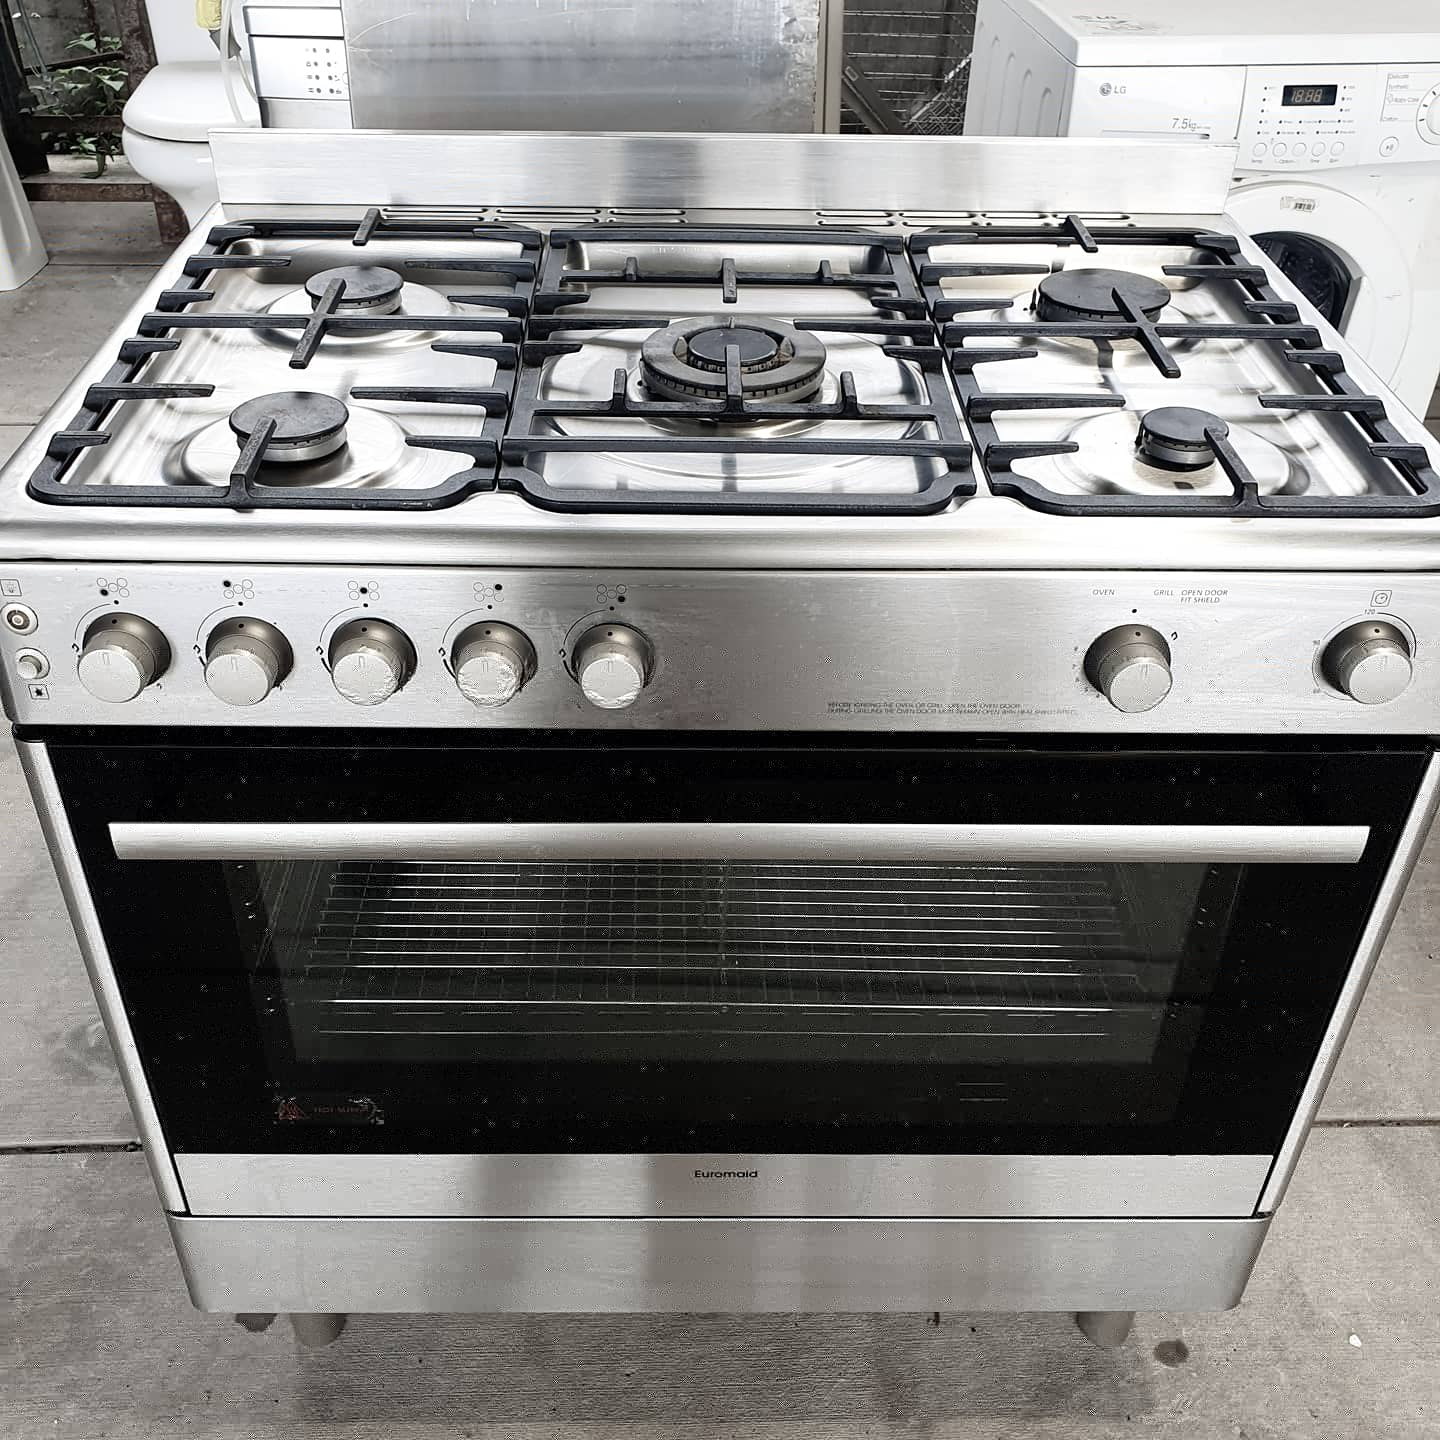 🌿Euromaid Oven with Rangehood and Stainless Splashback and Heat Guards🌿